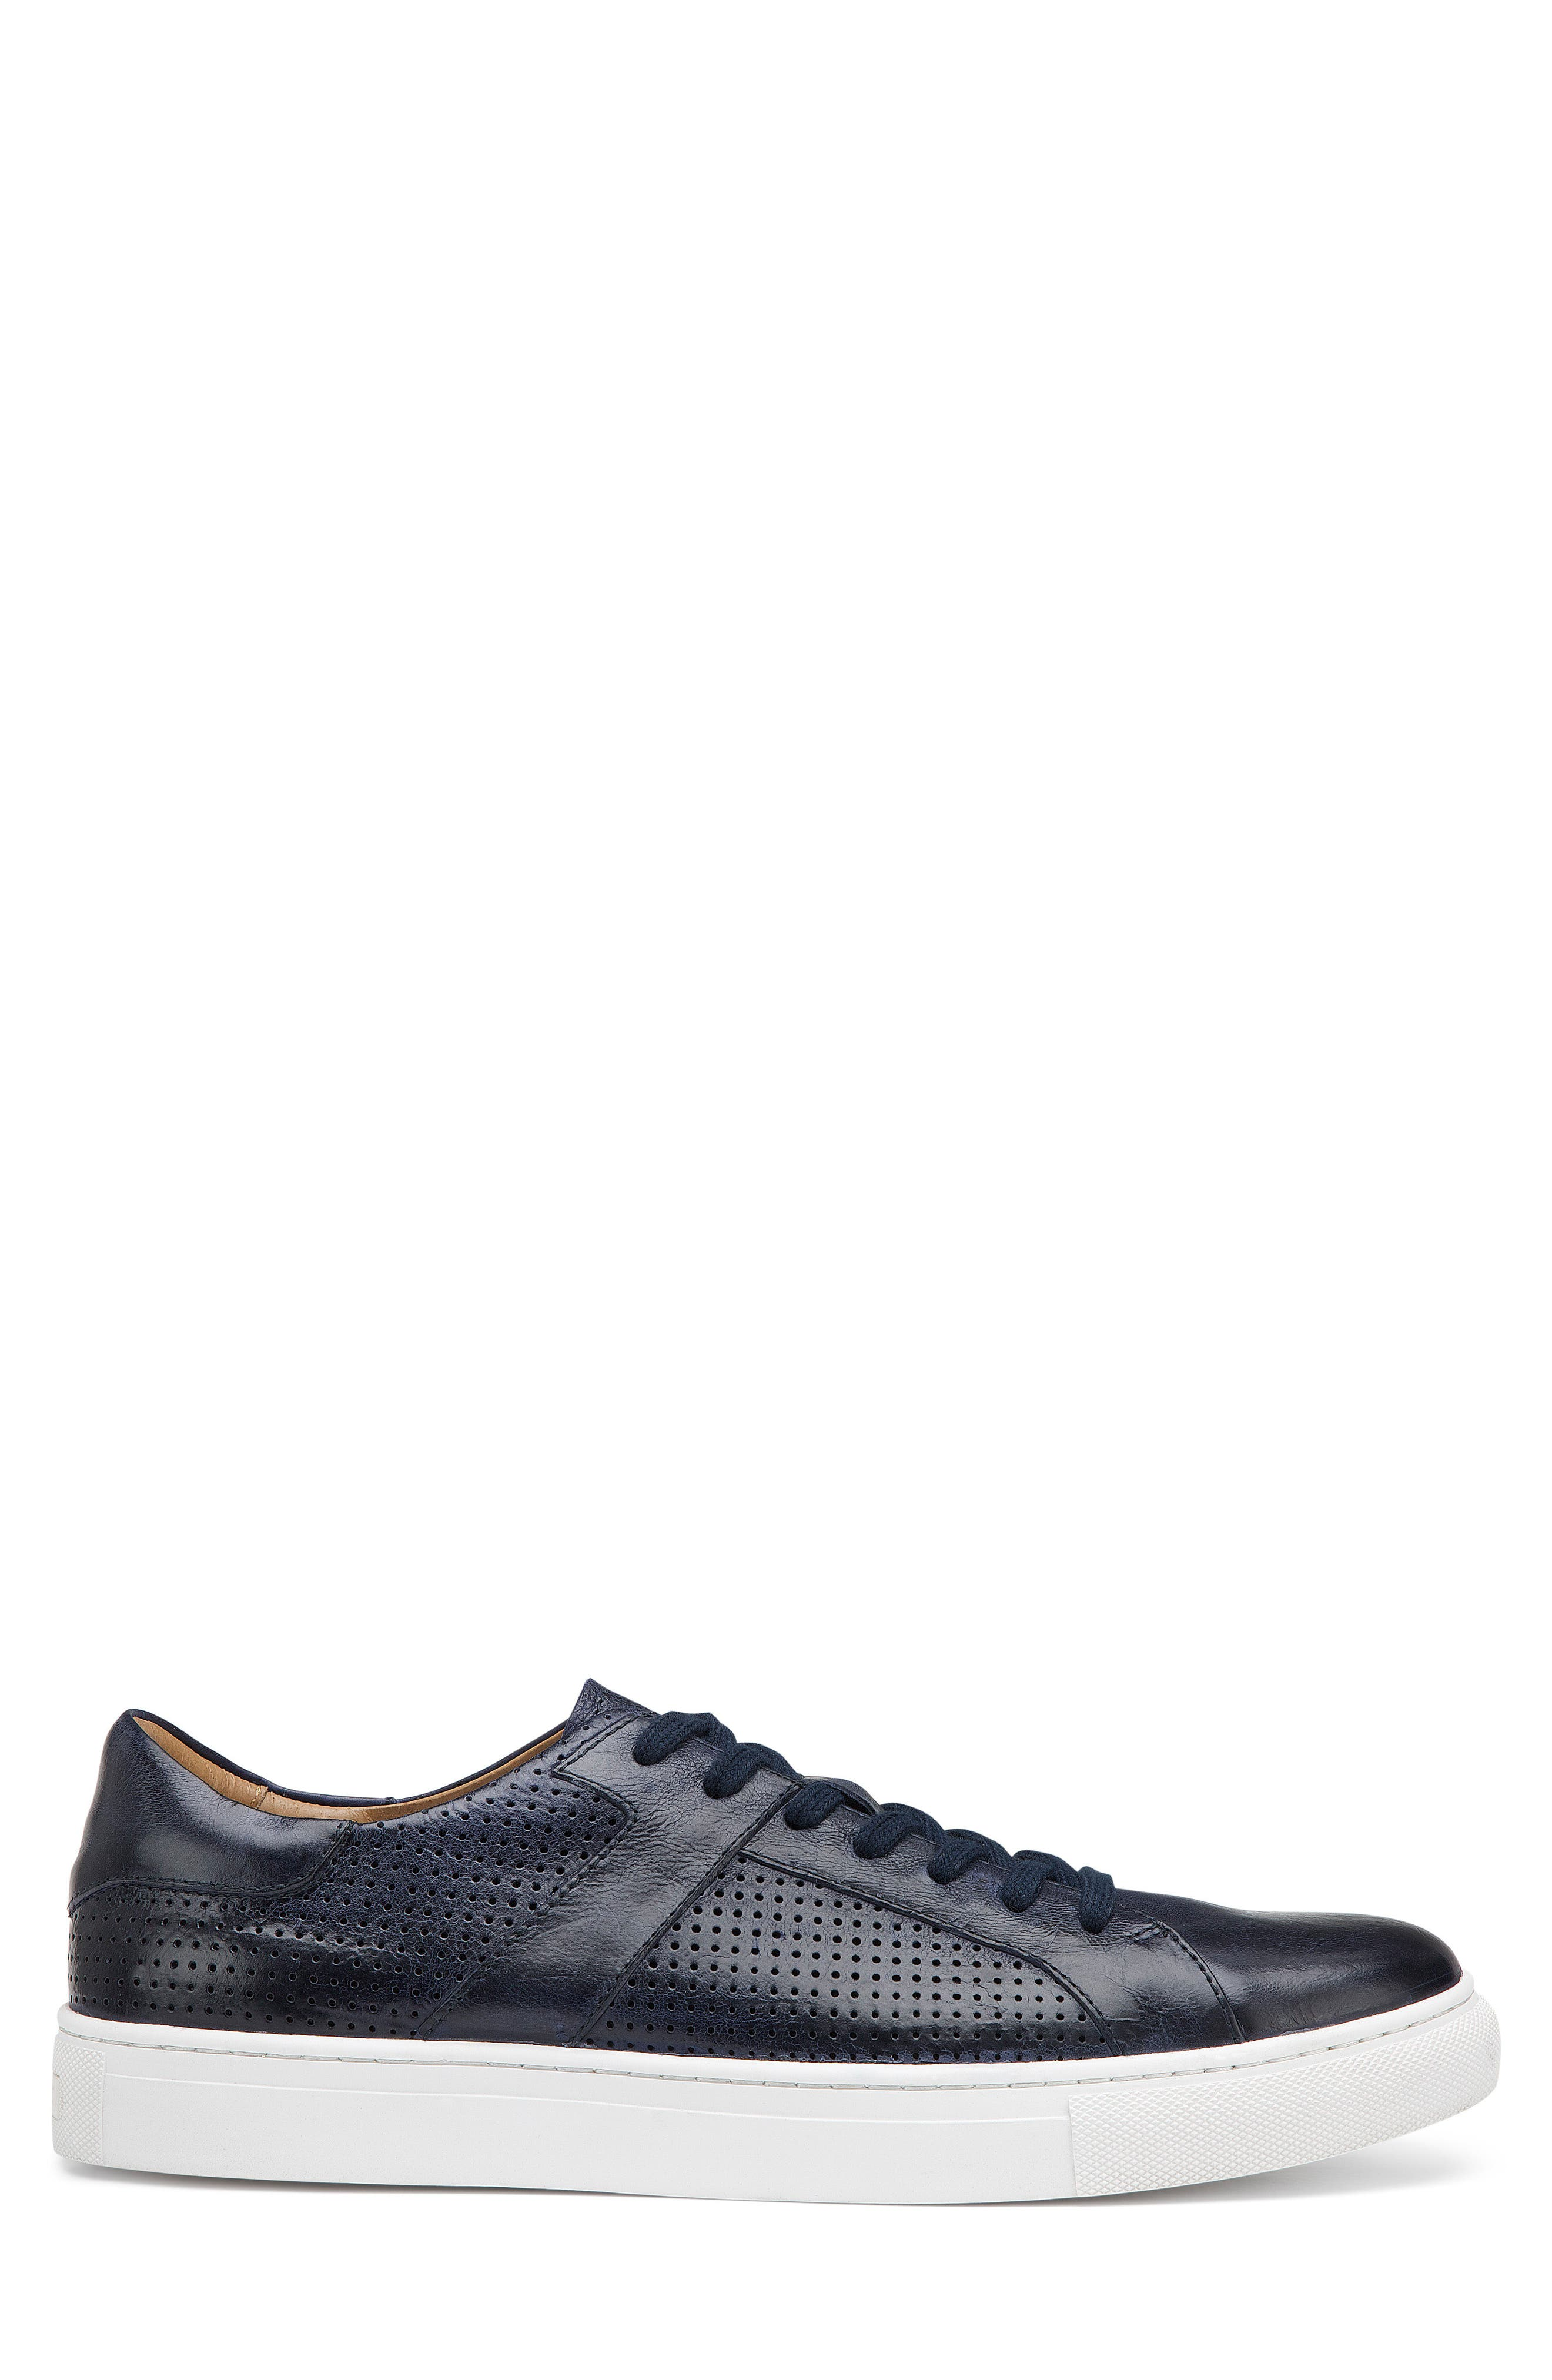 Aaron Sneaker,                             Alternate thumbnail 6, color,                             Navy Leather